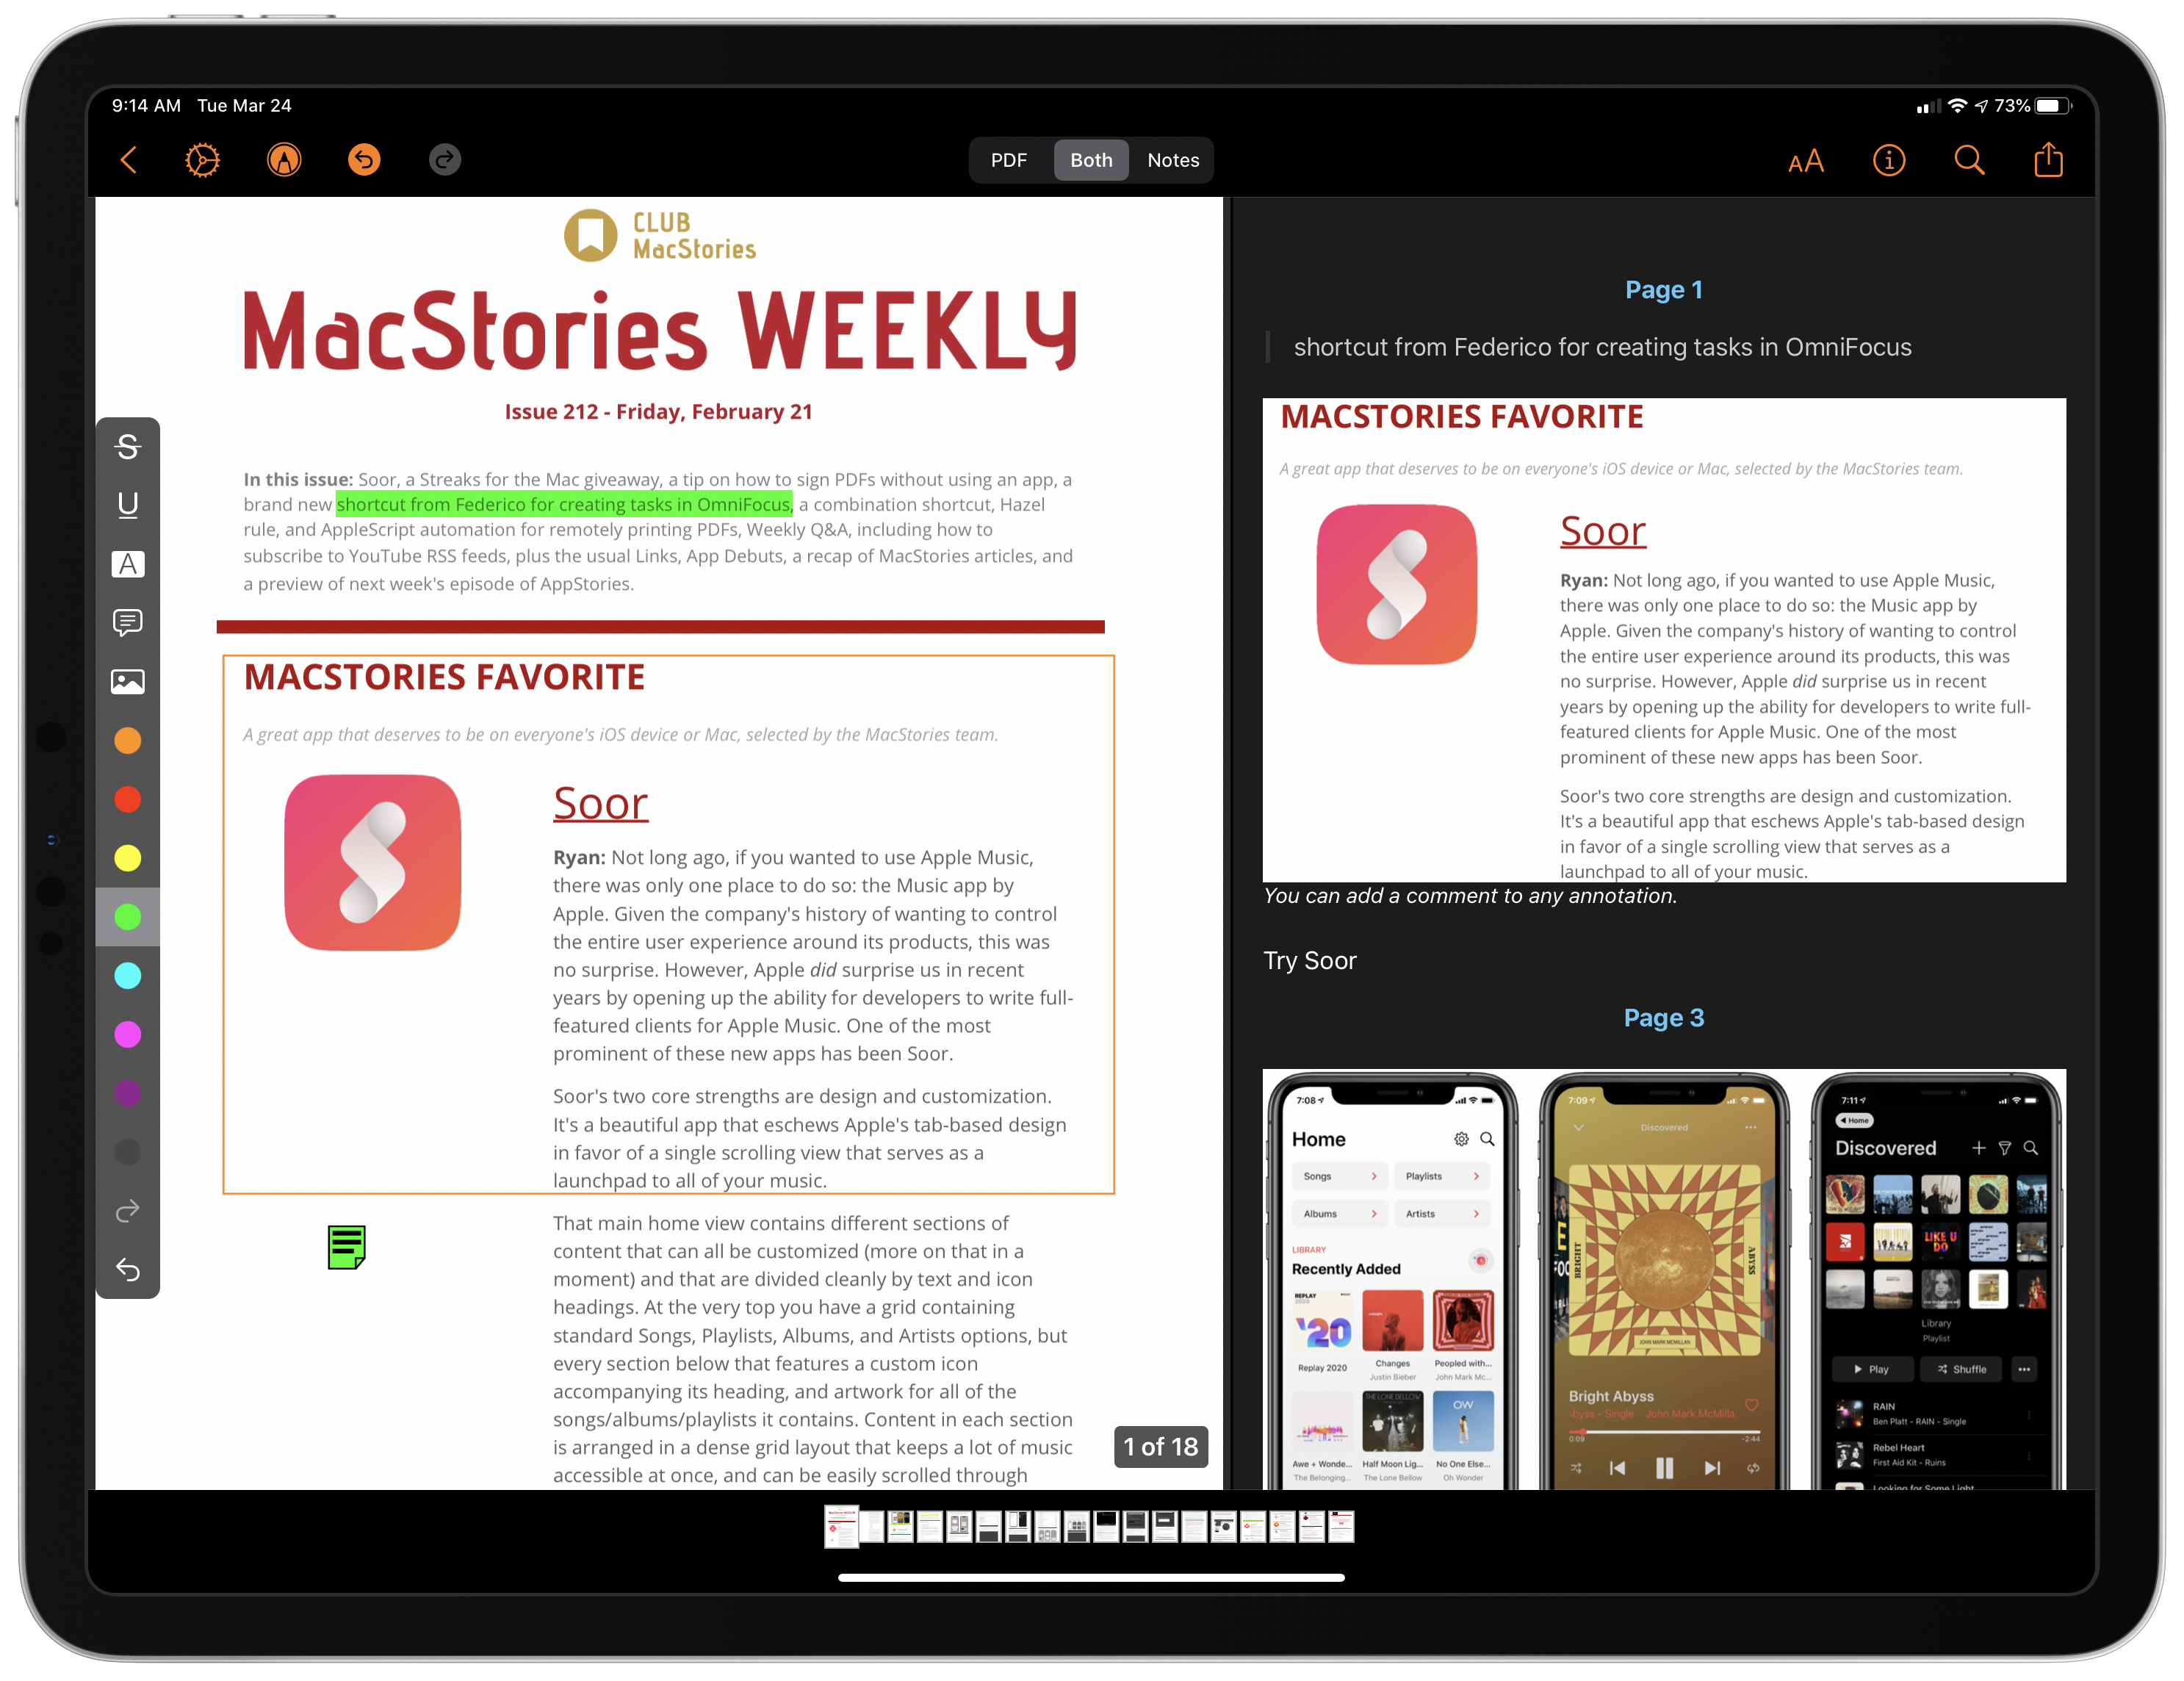 Highlights for iPhone and iPad: An Excellent Companion for Researchers